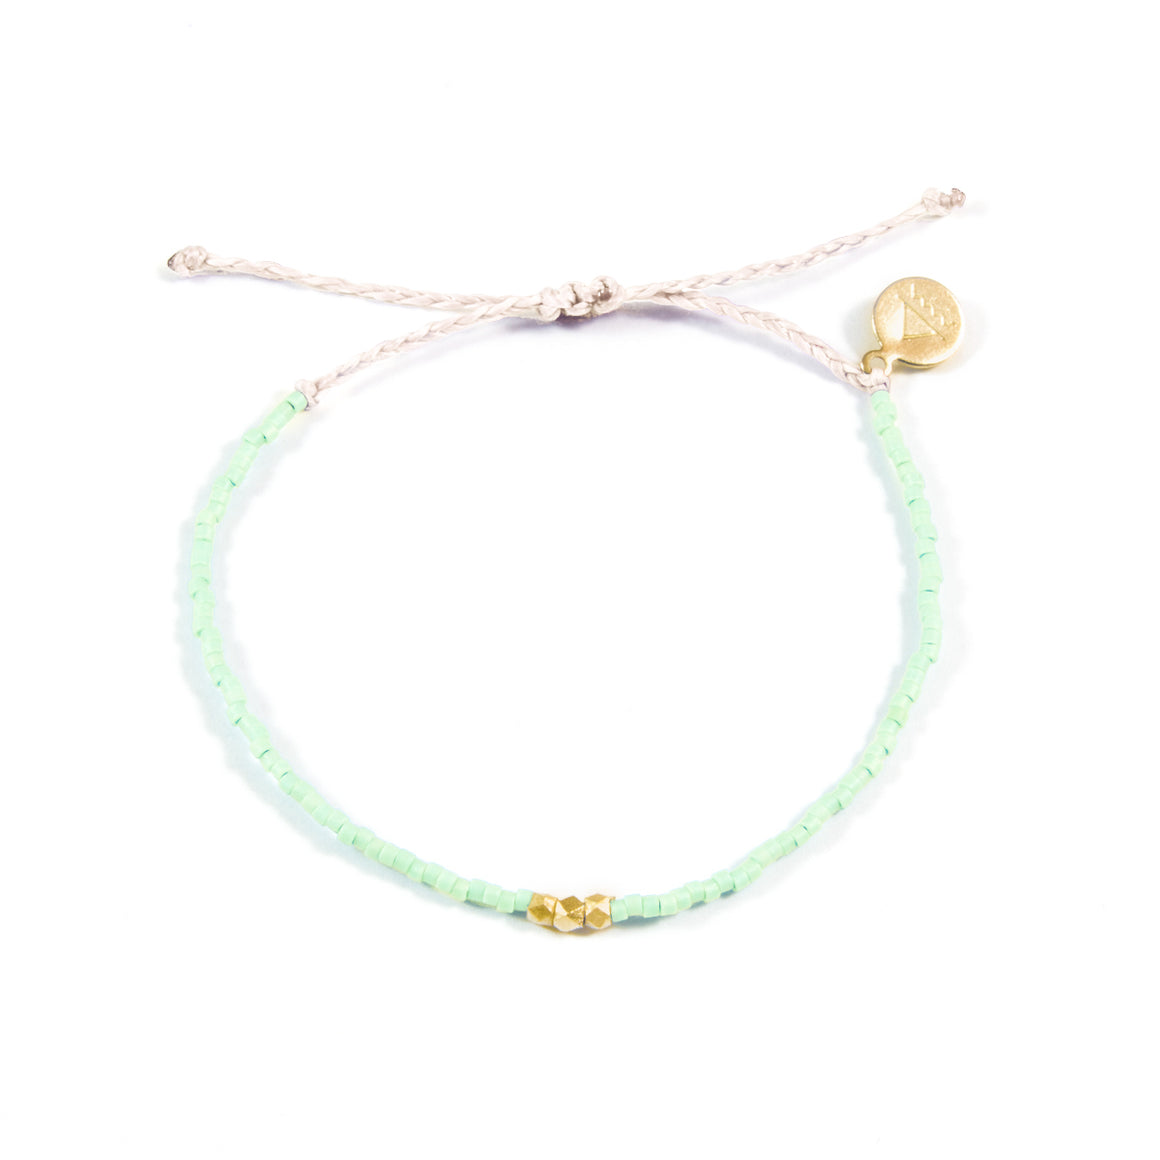 Soft Mint & White Gold Bead Bracelet